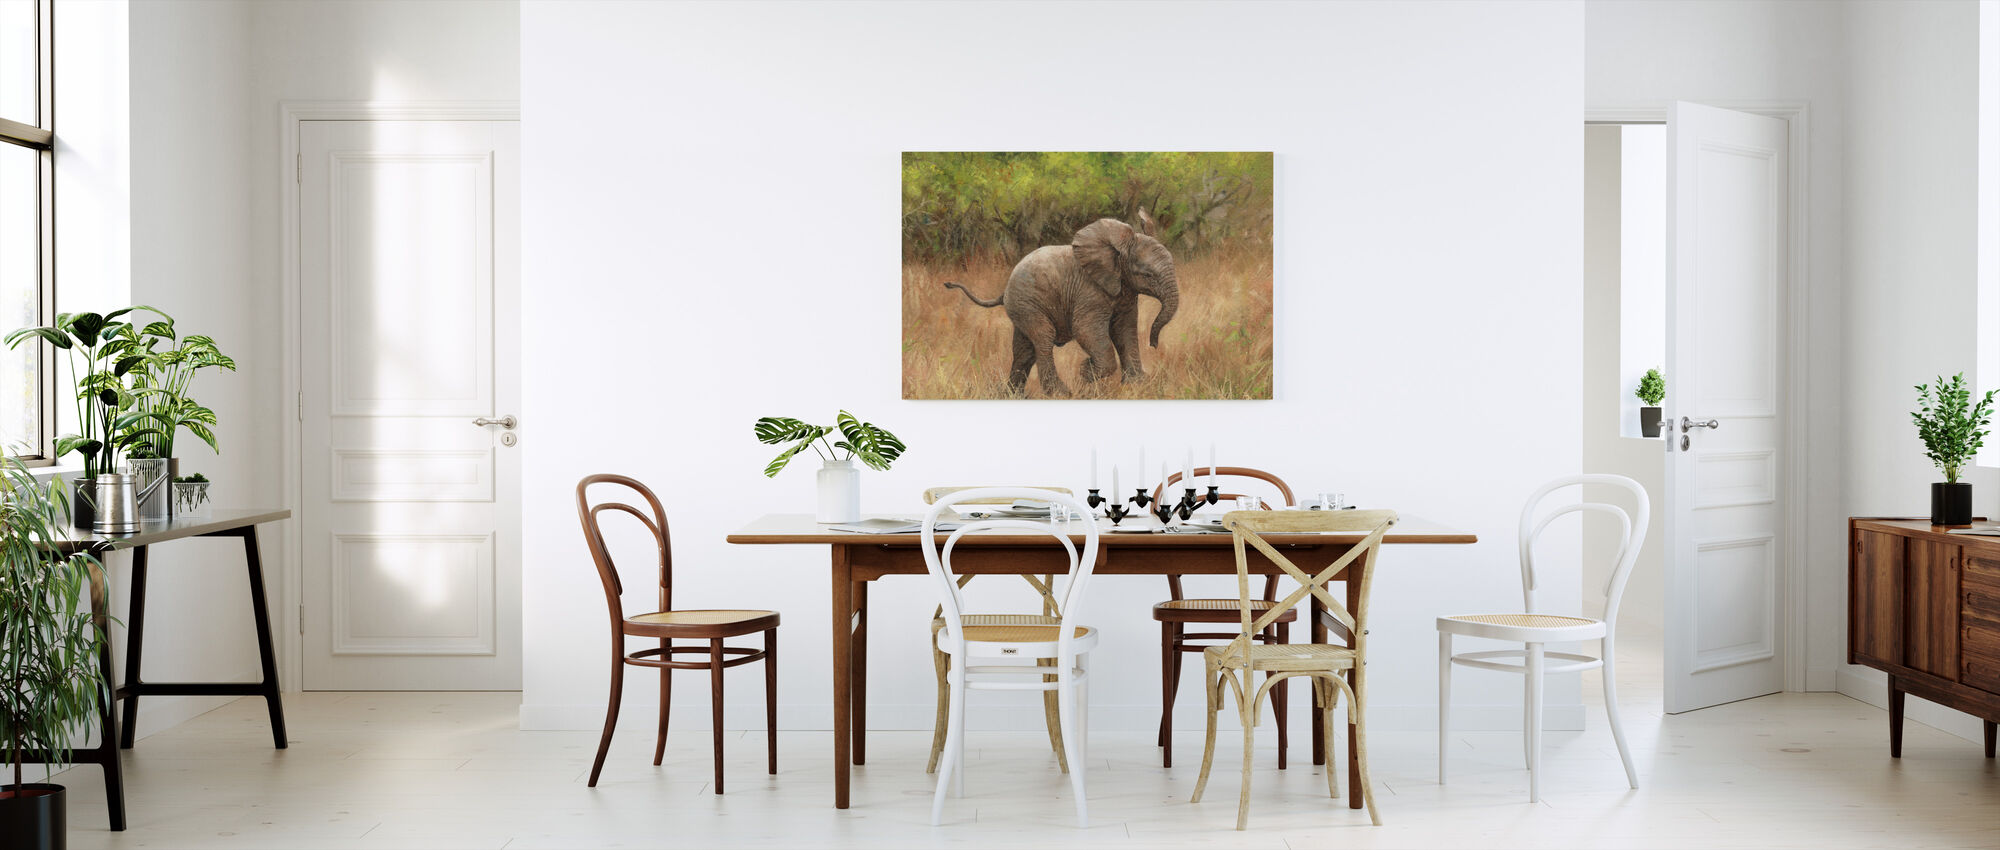 Baby African Elephant - Canvas print - Kitchen